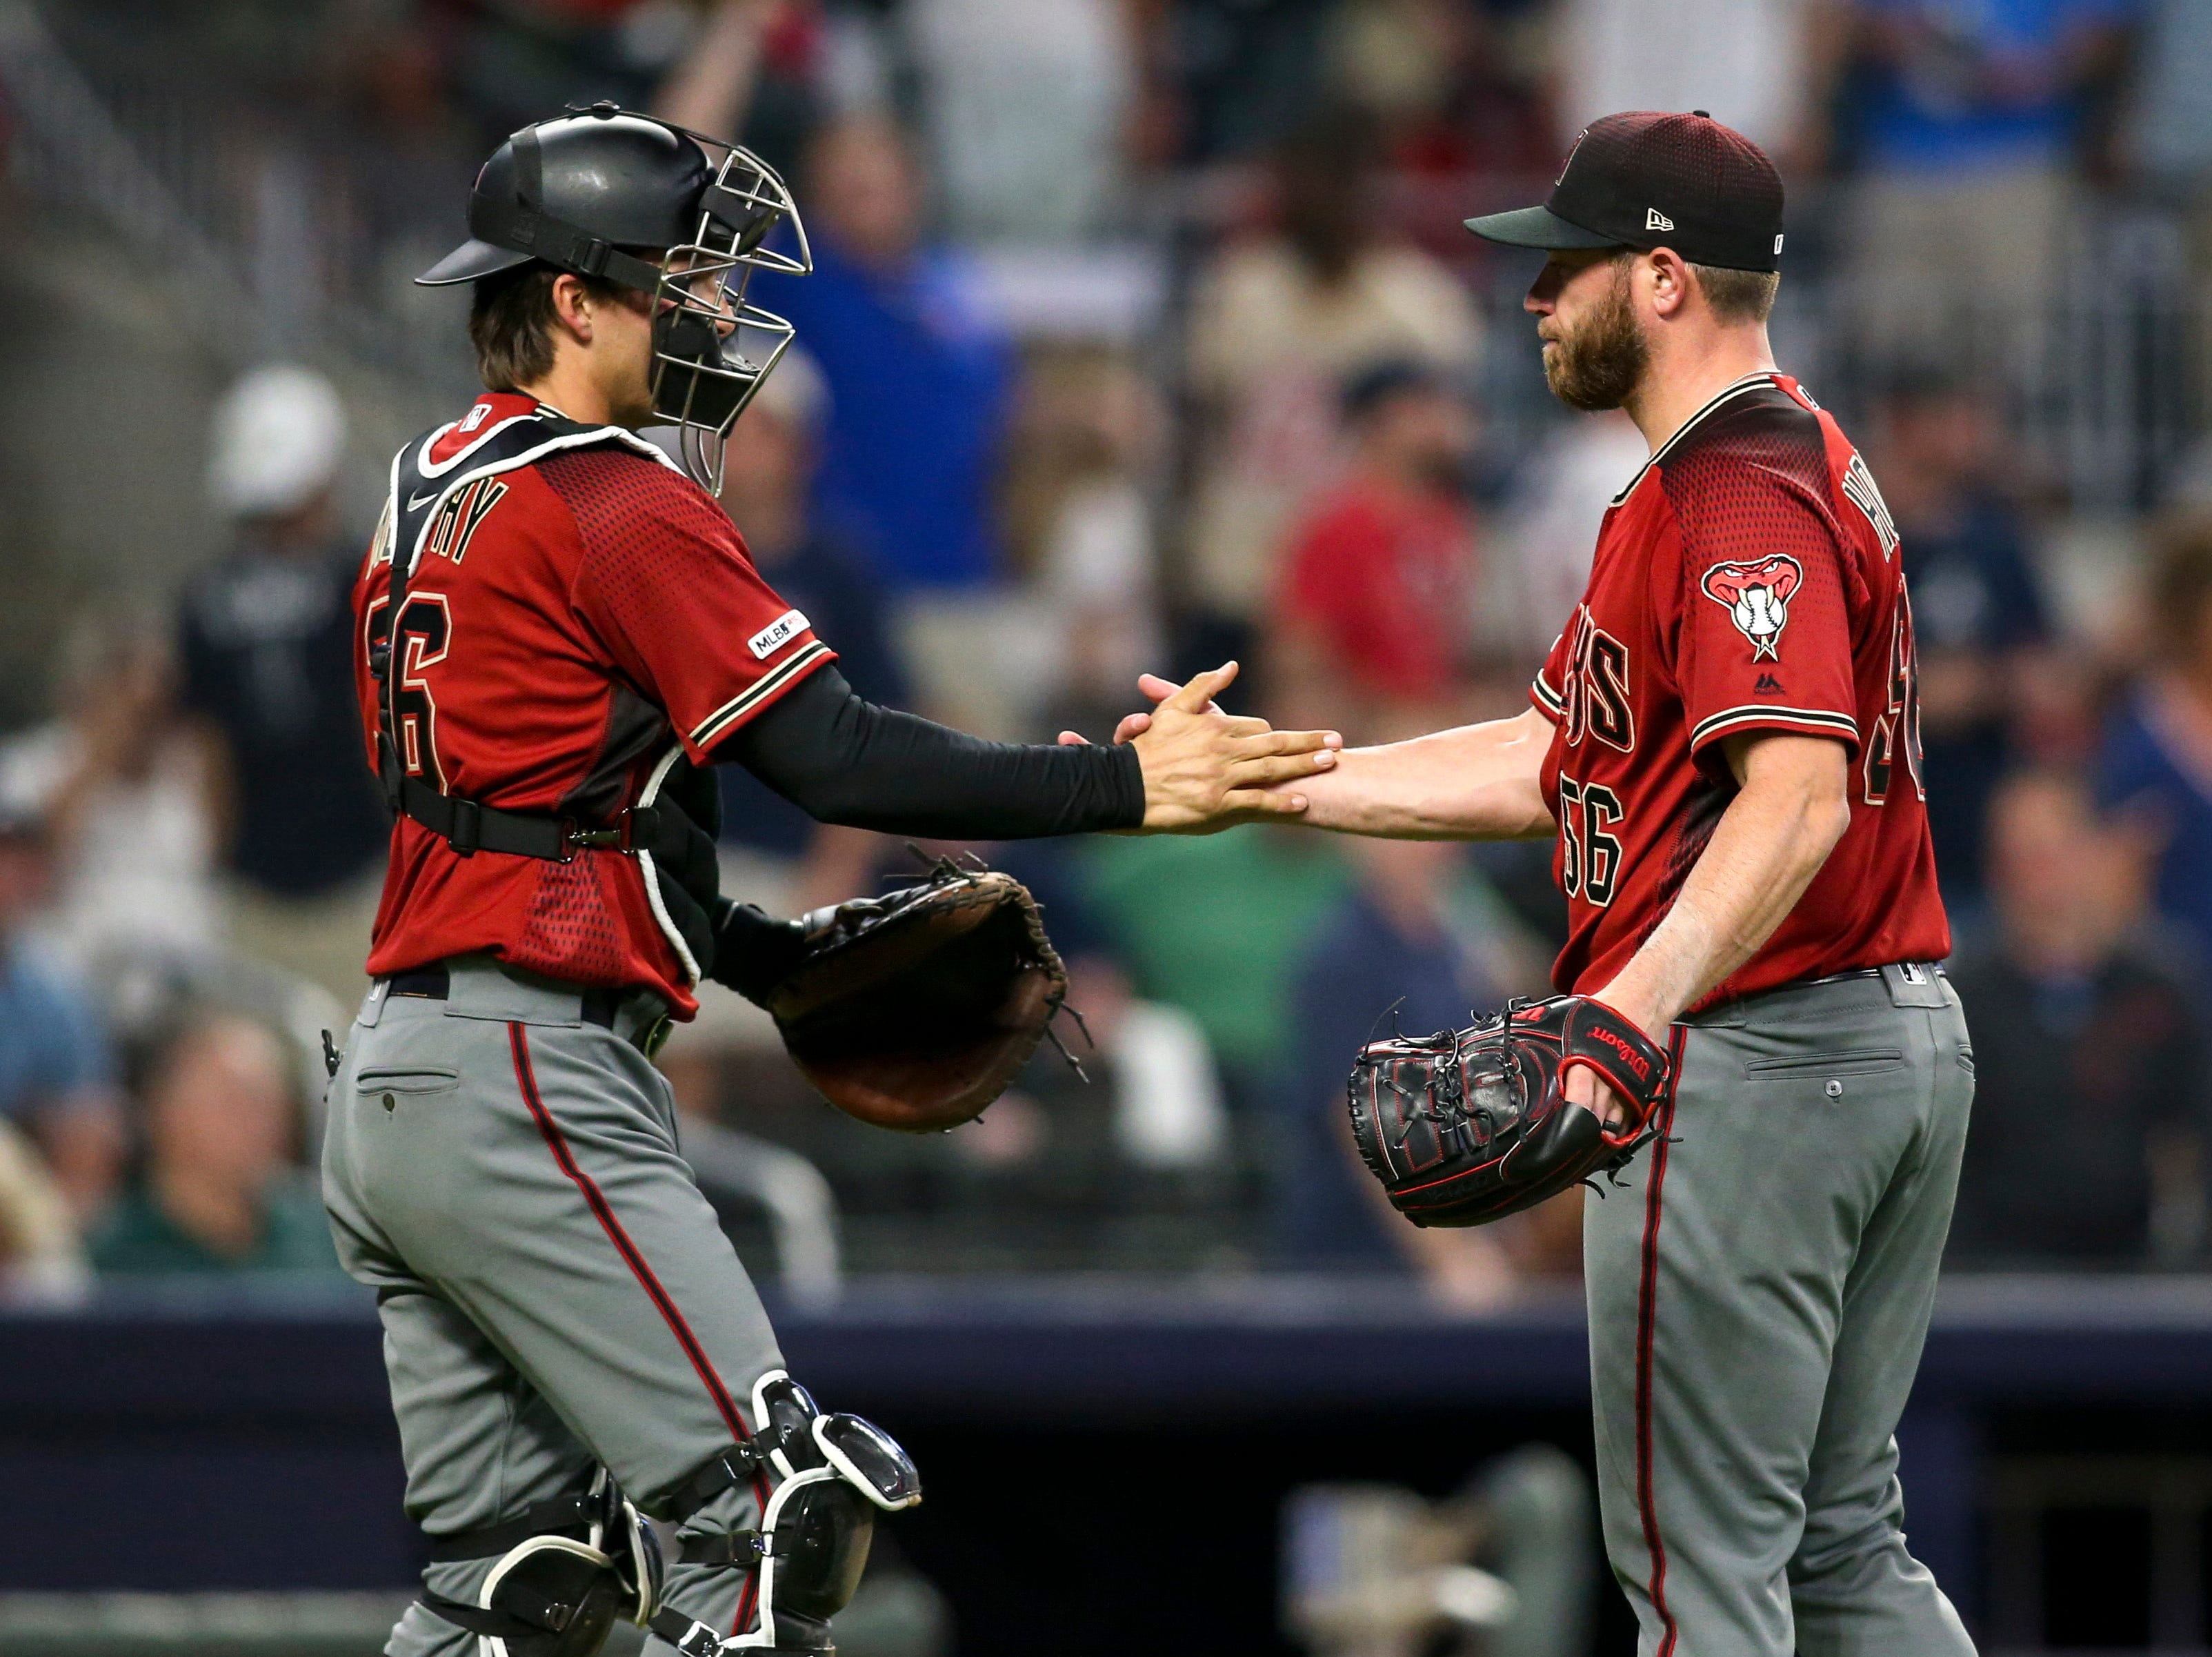 Apr 17, 2019; Atlanta, GA, USA; Arizona Diamondbacks center fielder Tim Locastro (16) and relief pitcher Greg Holland (56) celebrate after a victory against the Atlanta Braves at SunTrust Park. Mandatory Credit: Brett Davis-USA TODAY Sports